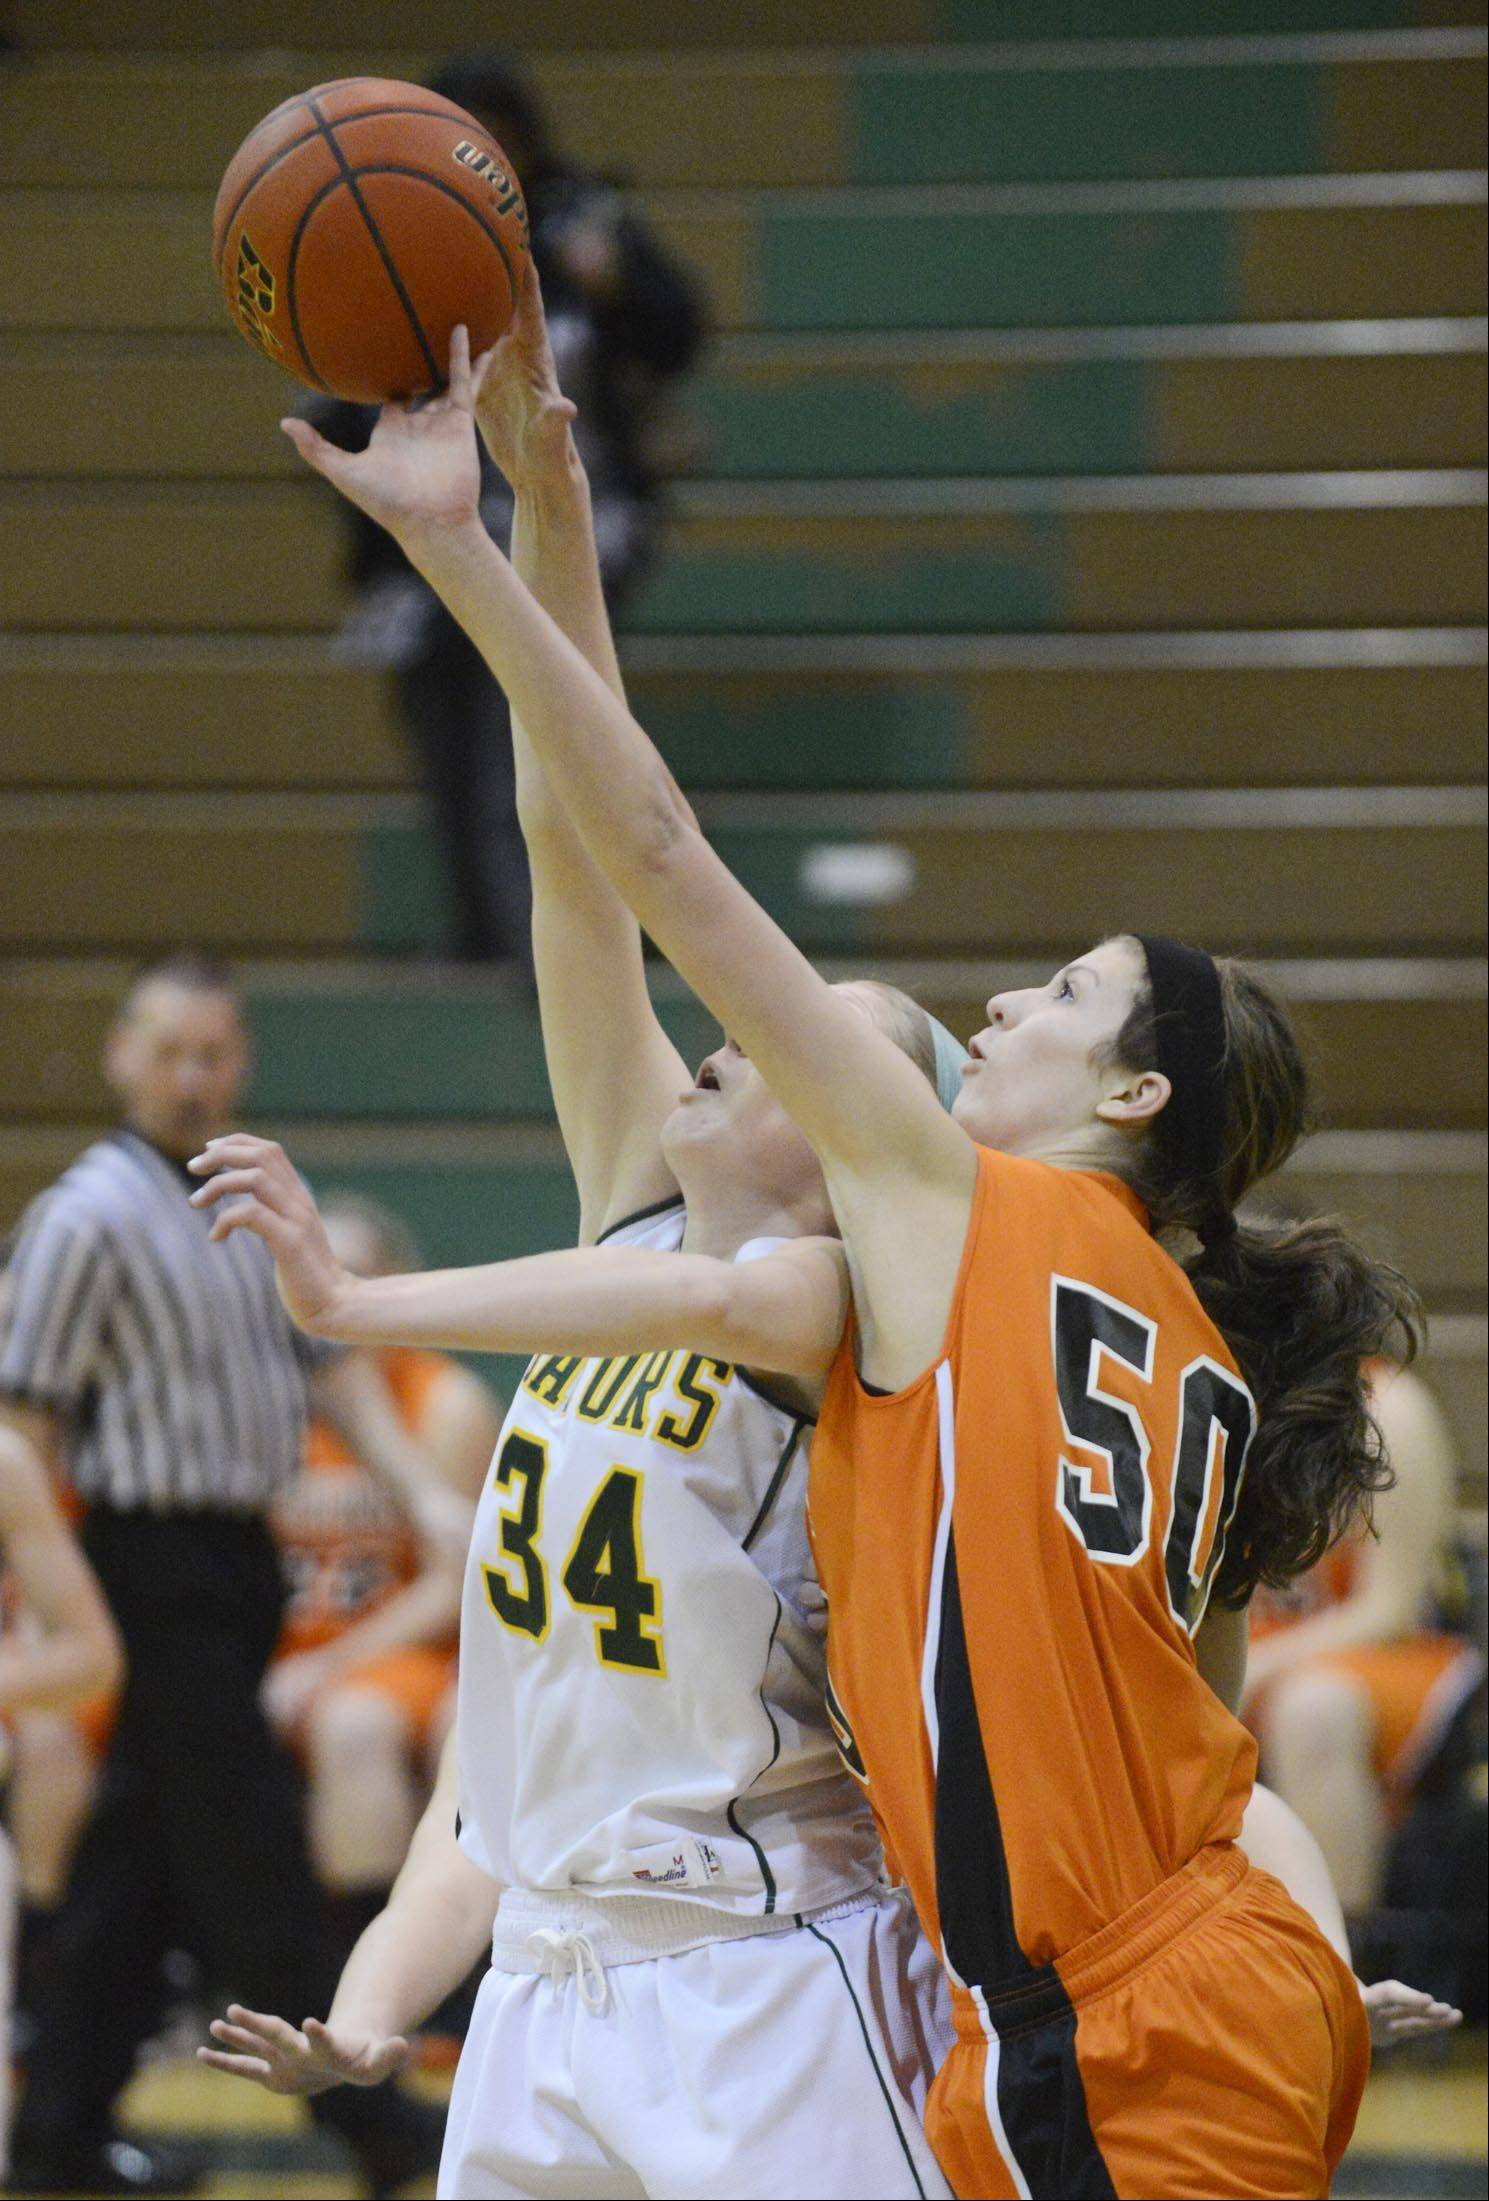 Images from the McHenry vs. Crystal Lake South girls basketball game Wednesday, January 16, 2013.